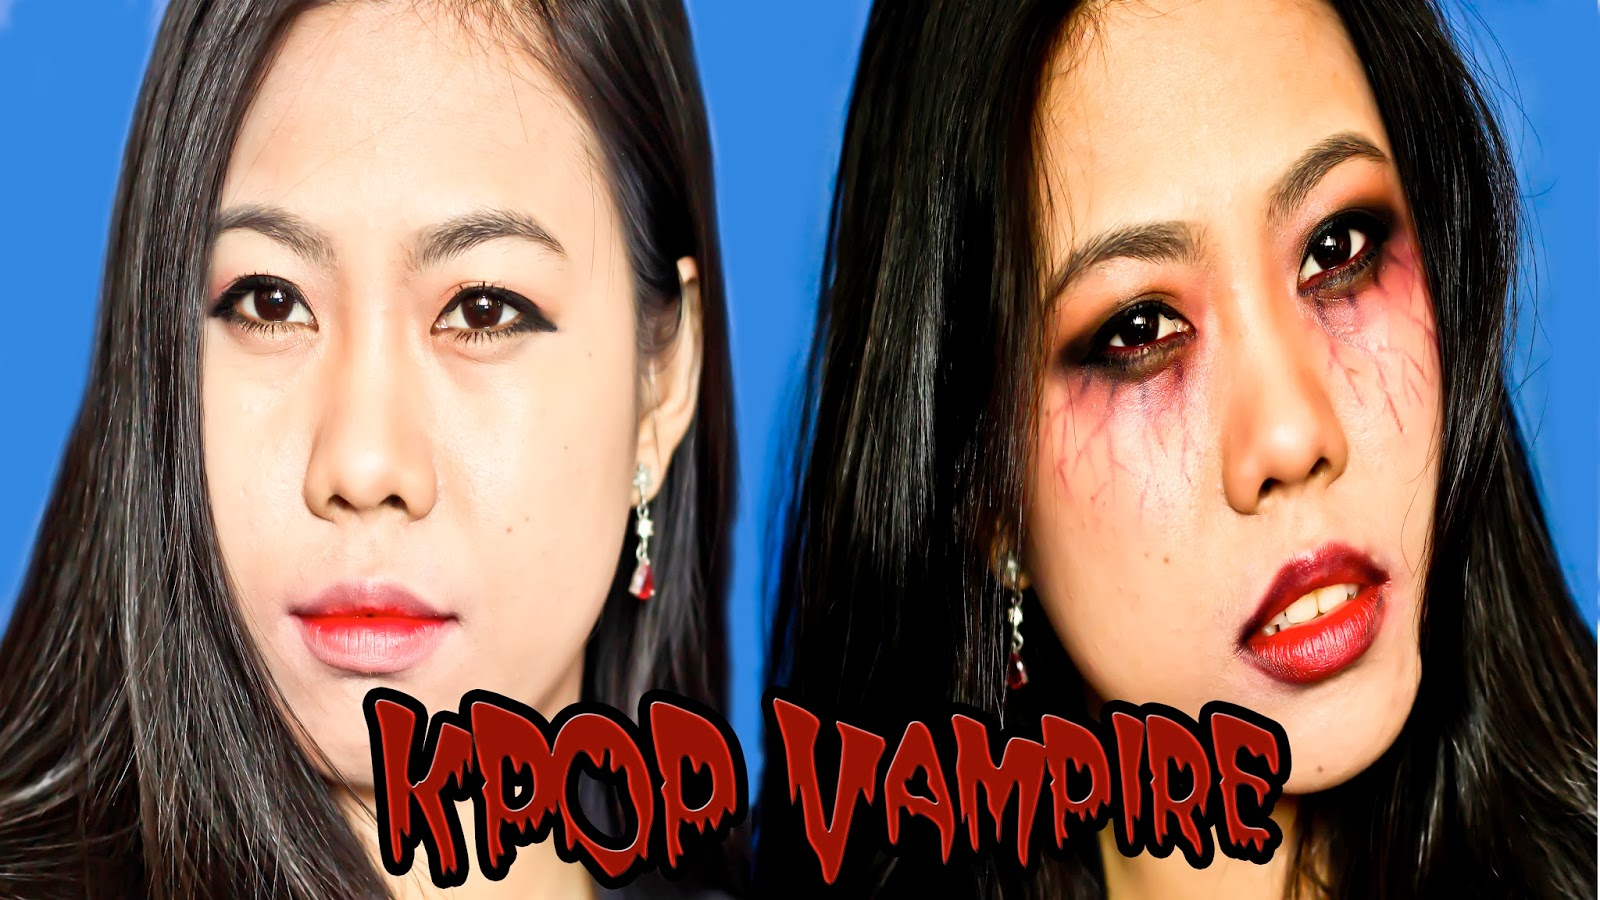 Makeup tutorial how to be a kpop vampire confessions of a late i wanted to say happy halloween but i know not everyone celebrates halloween so to be on the safer side happy november 1st instead baditri Image collections